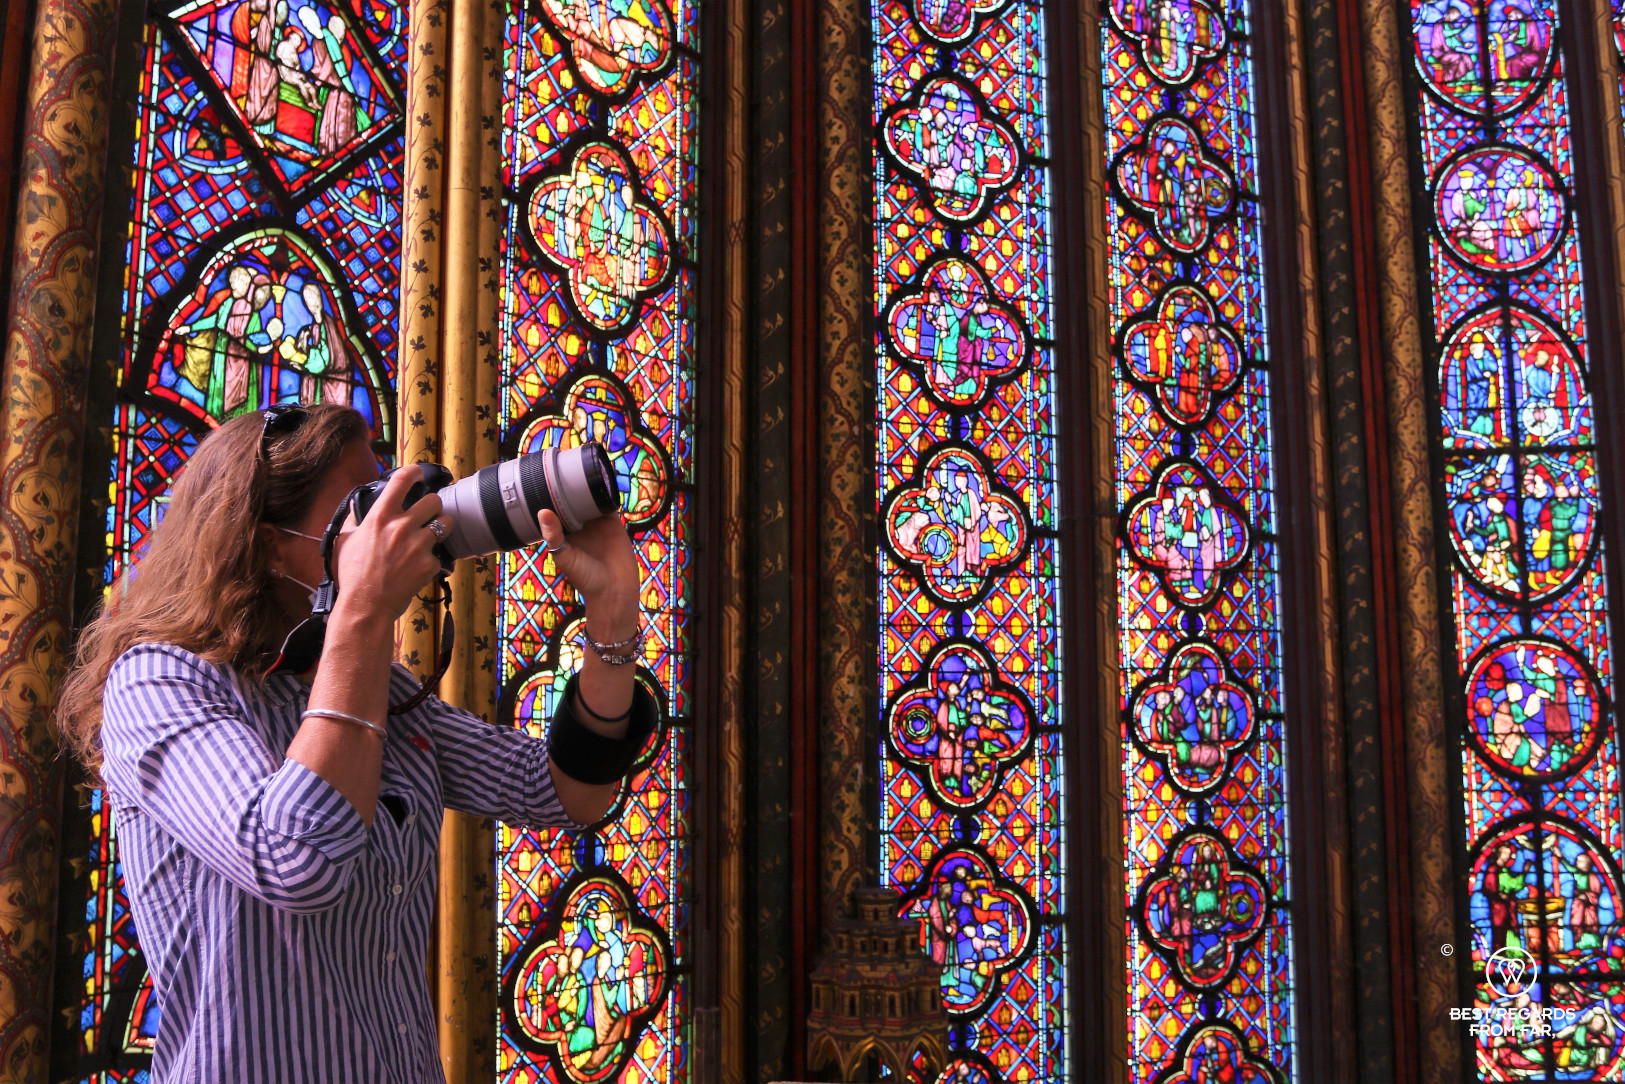 Woman taking a photo of stained-glass windows at La Sainte Chapelle in Paris, France